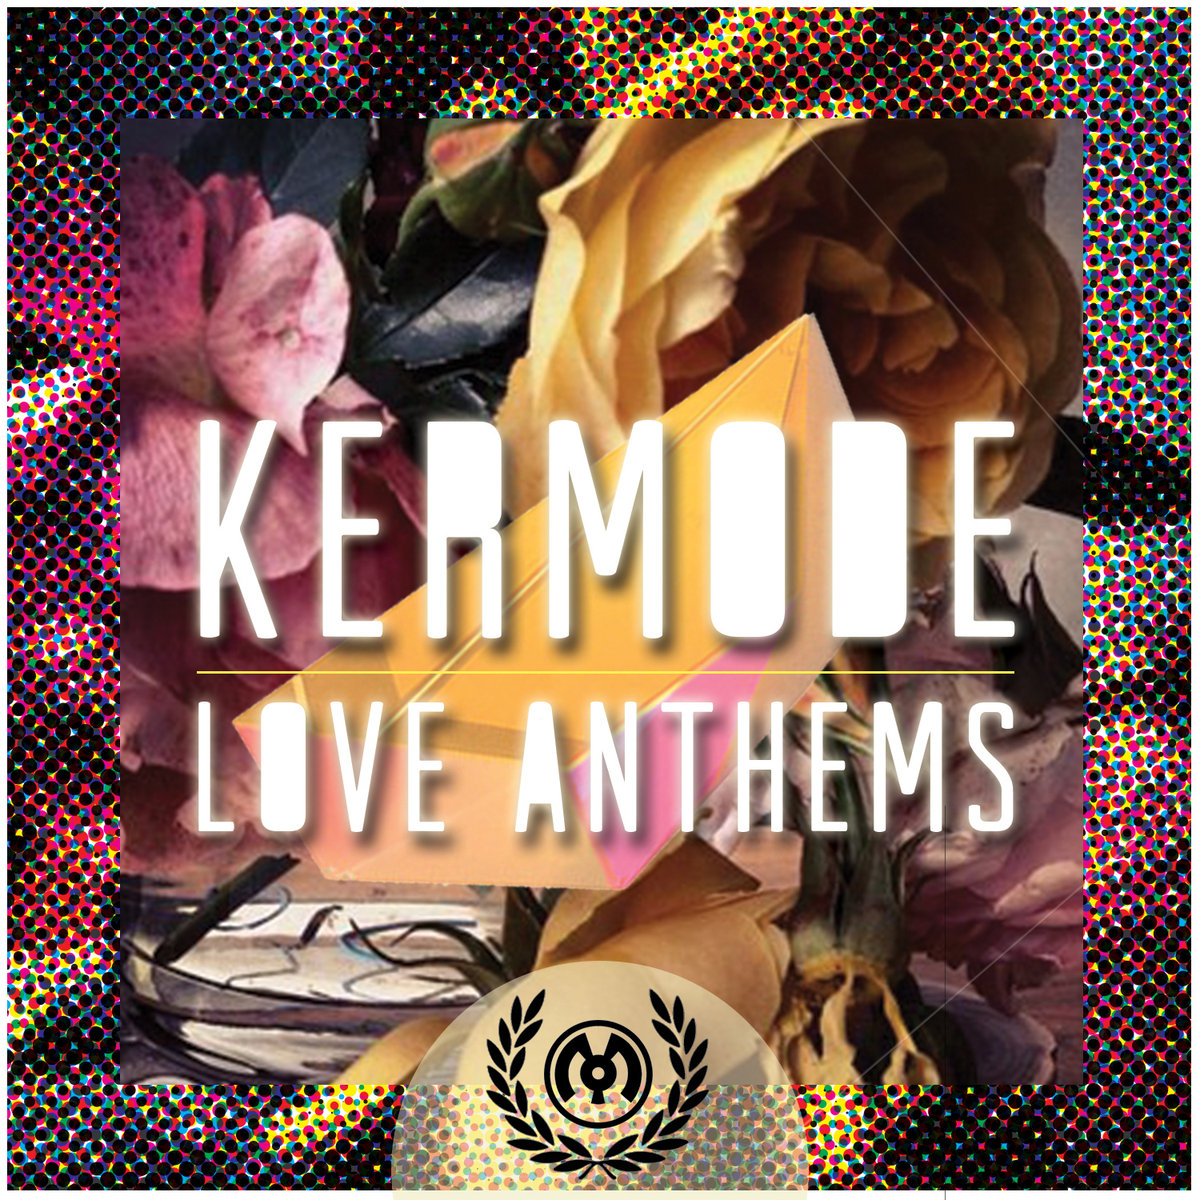 Kermode - Slow Fall @ 'Love Anthems' album (electronic, dubstep)